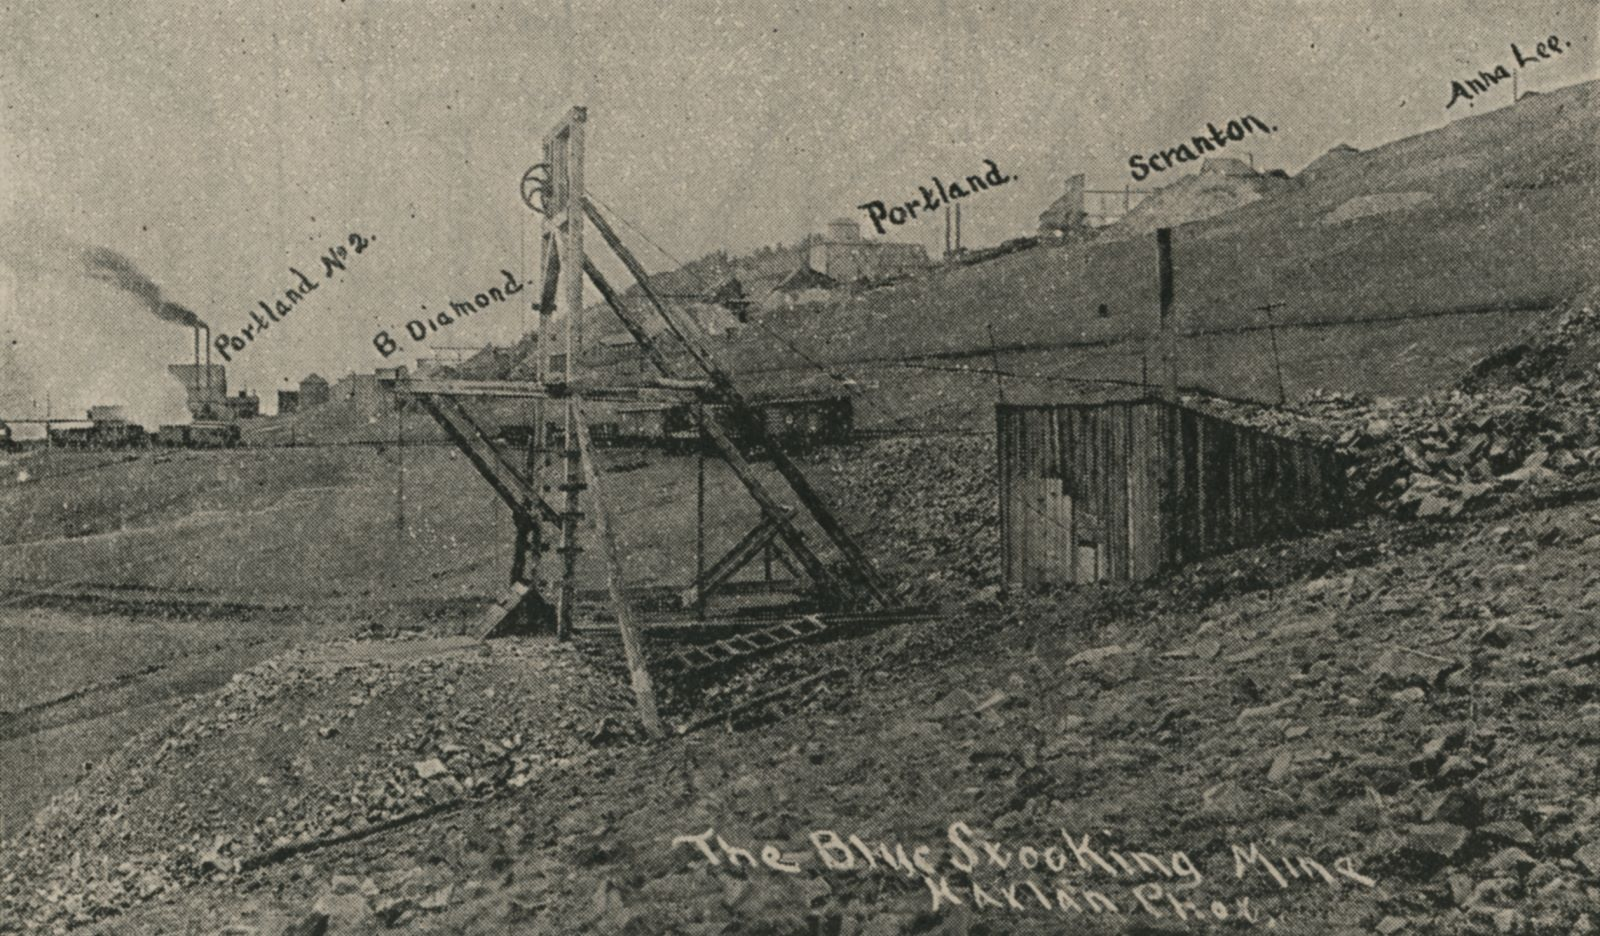 The Blue Stocking Mine | Battle Mountain, Showing Portland, Portland No. 2, Anna Lee, Scranton, Black Diamond and the Blue Stocking.